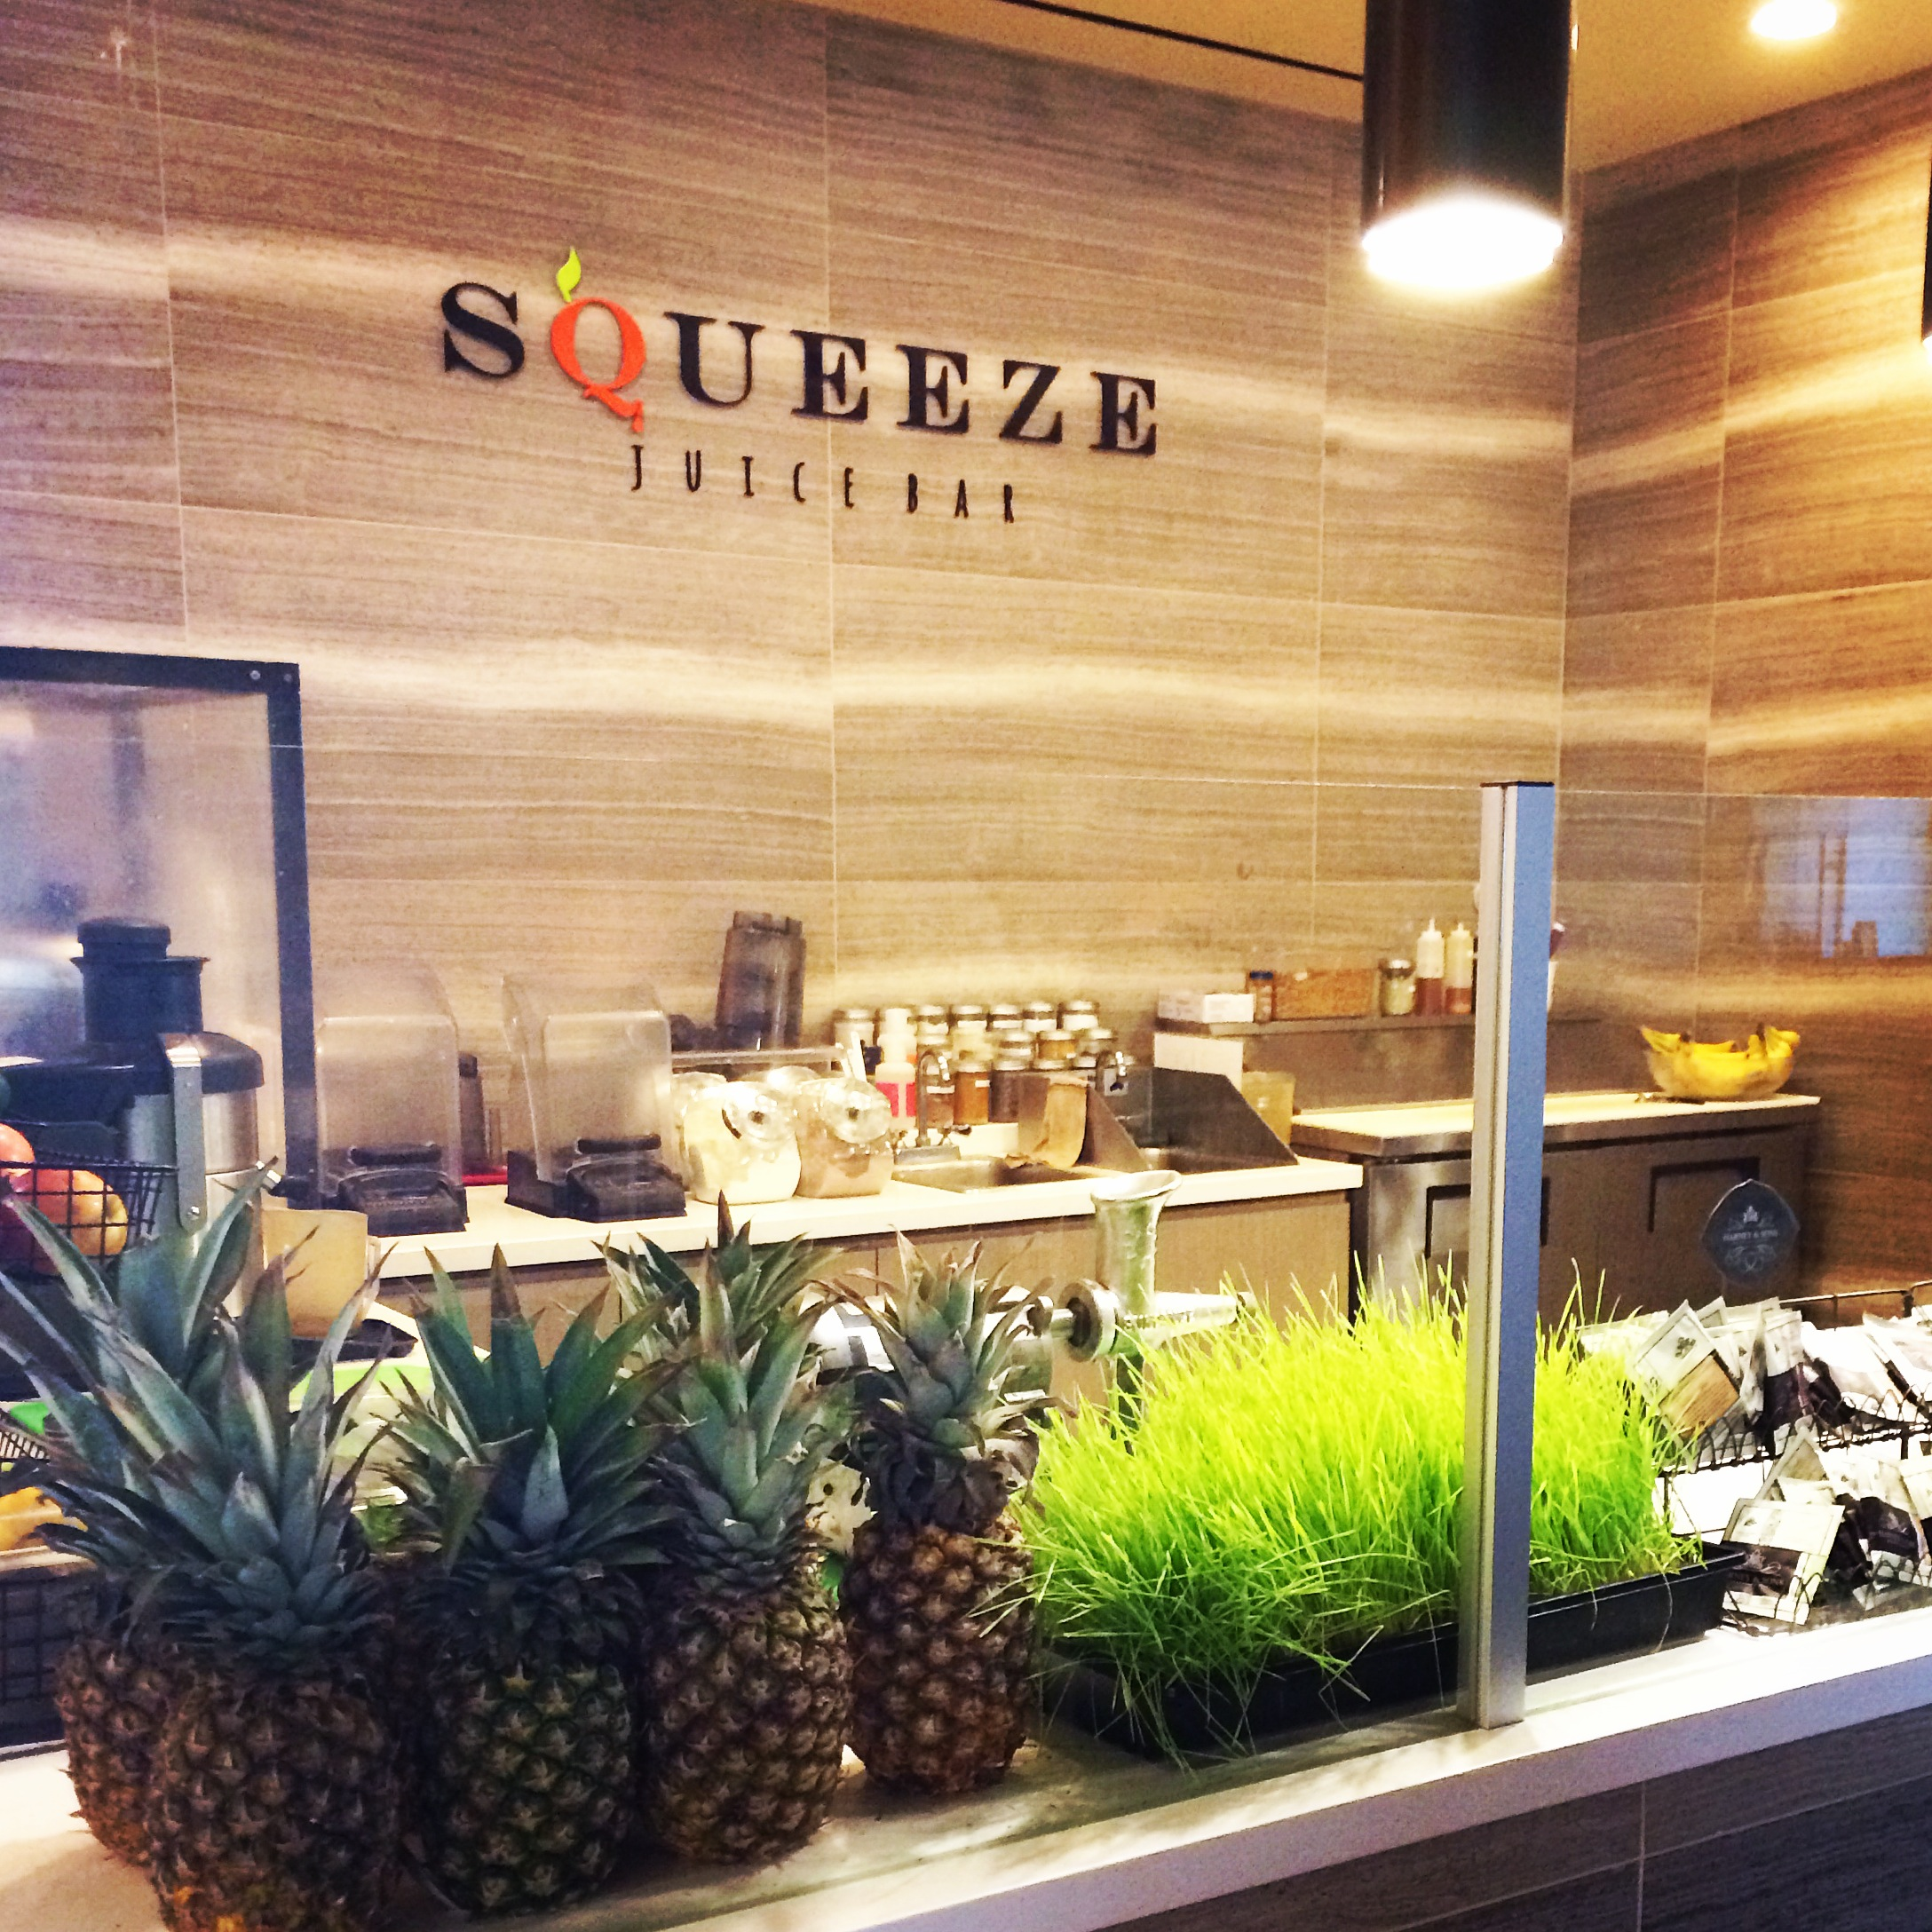 juices smoothies power acai bowls shots and a mix of food